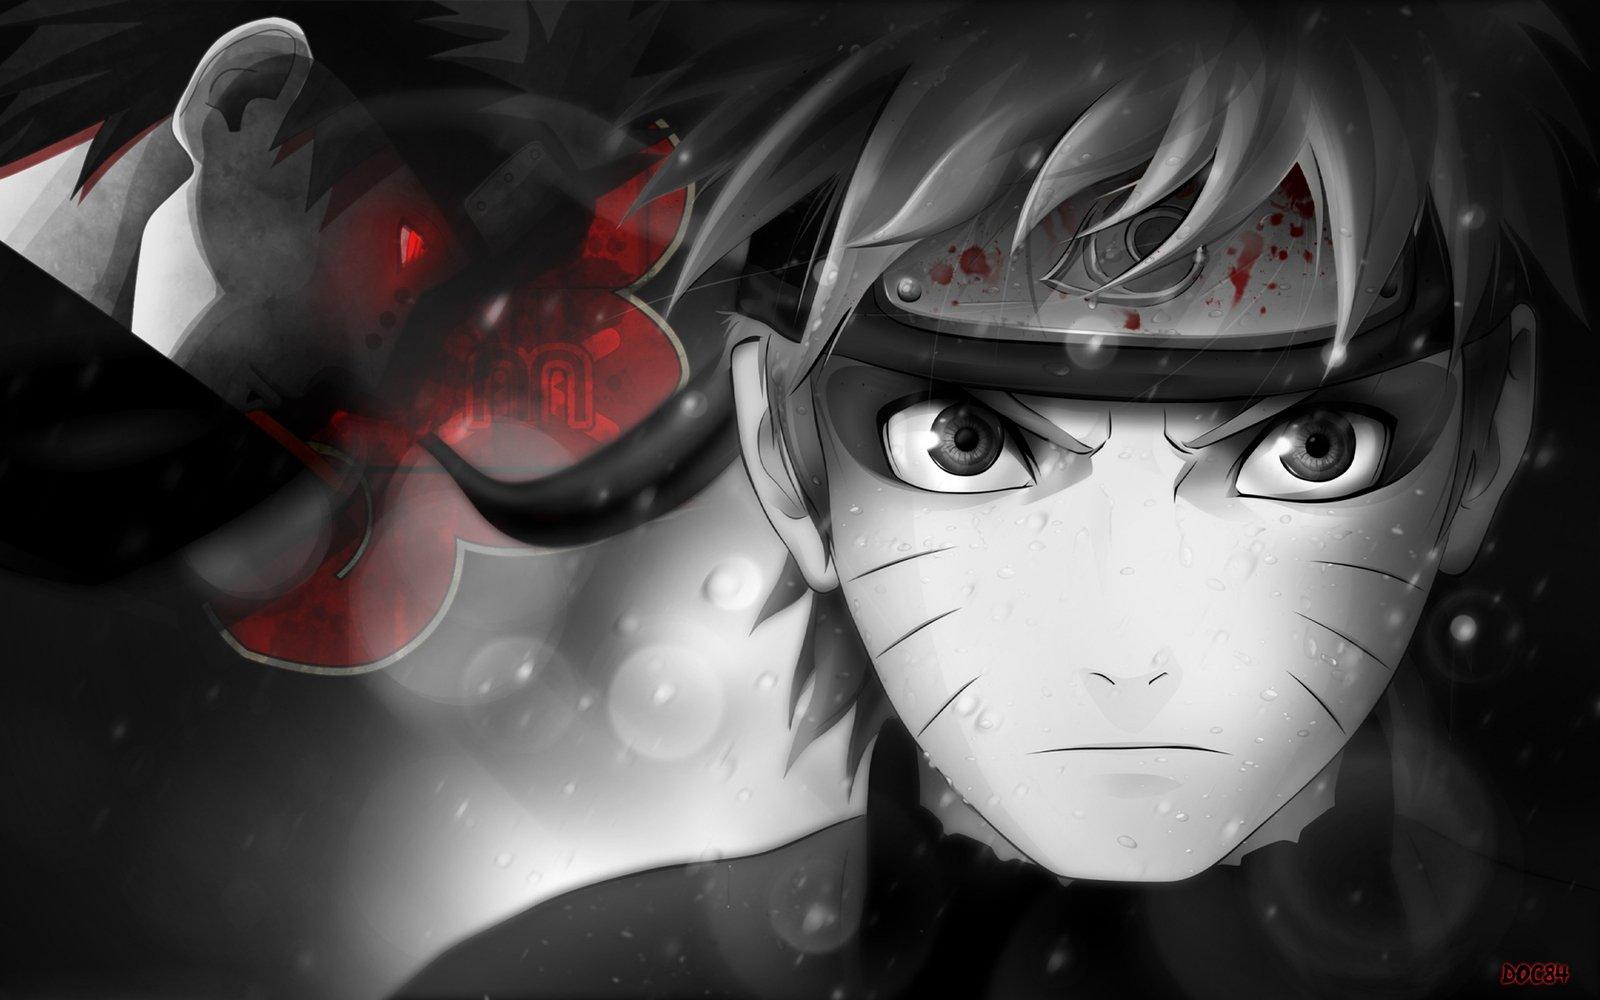 The Lonely Emo Boy By Tsubasa92 On Deviantart Lonely Emo Boy Anime